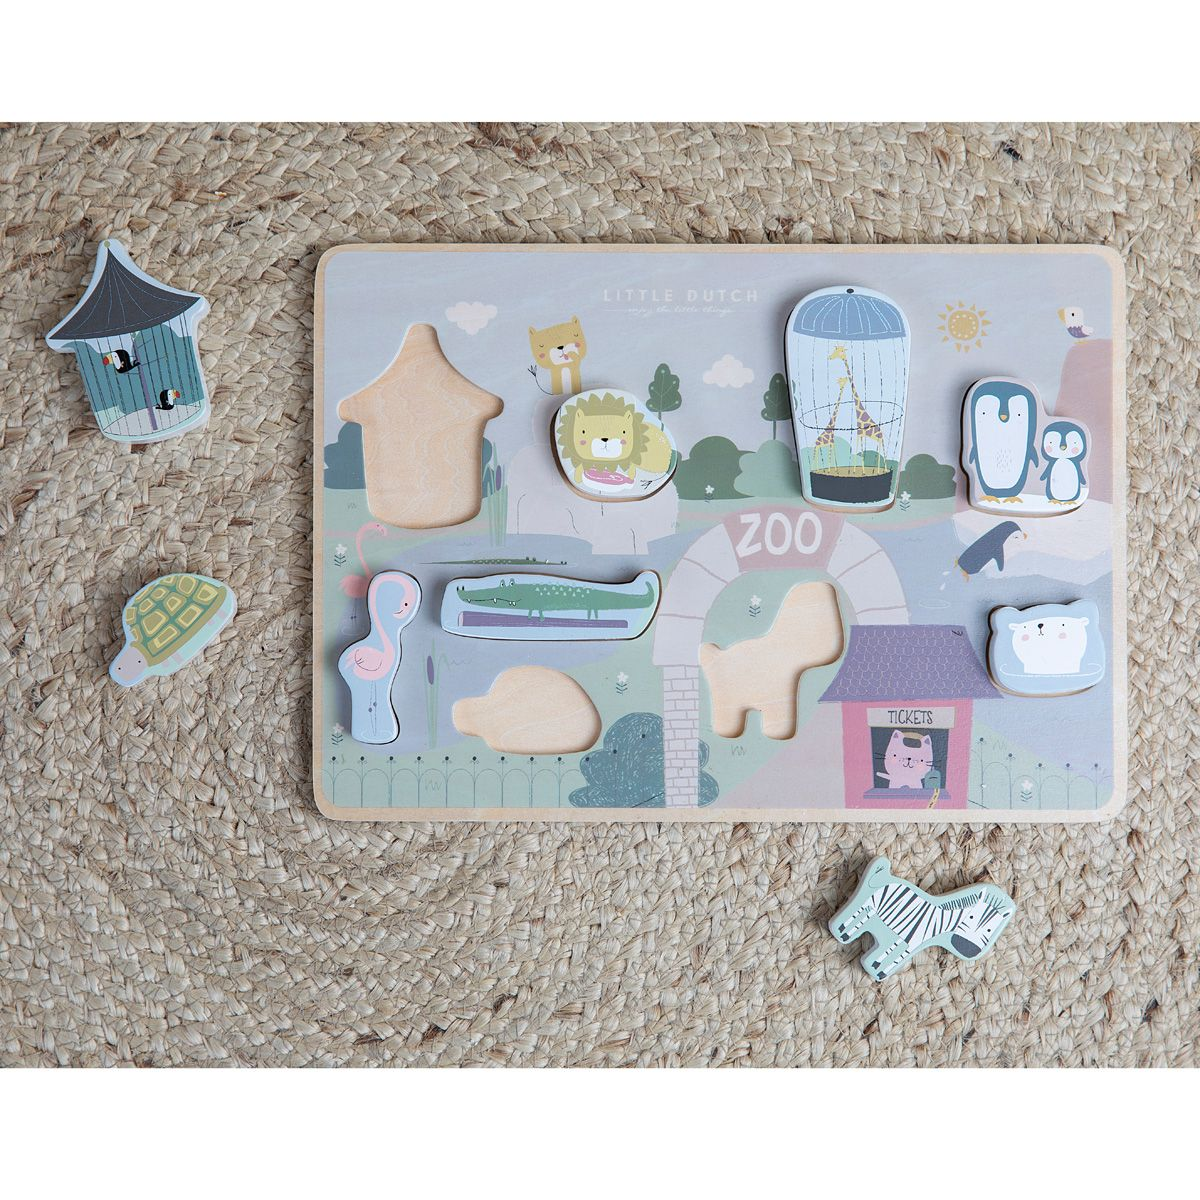 Holz-Formpuzzle 'Zoo'